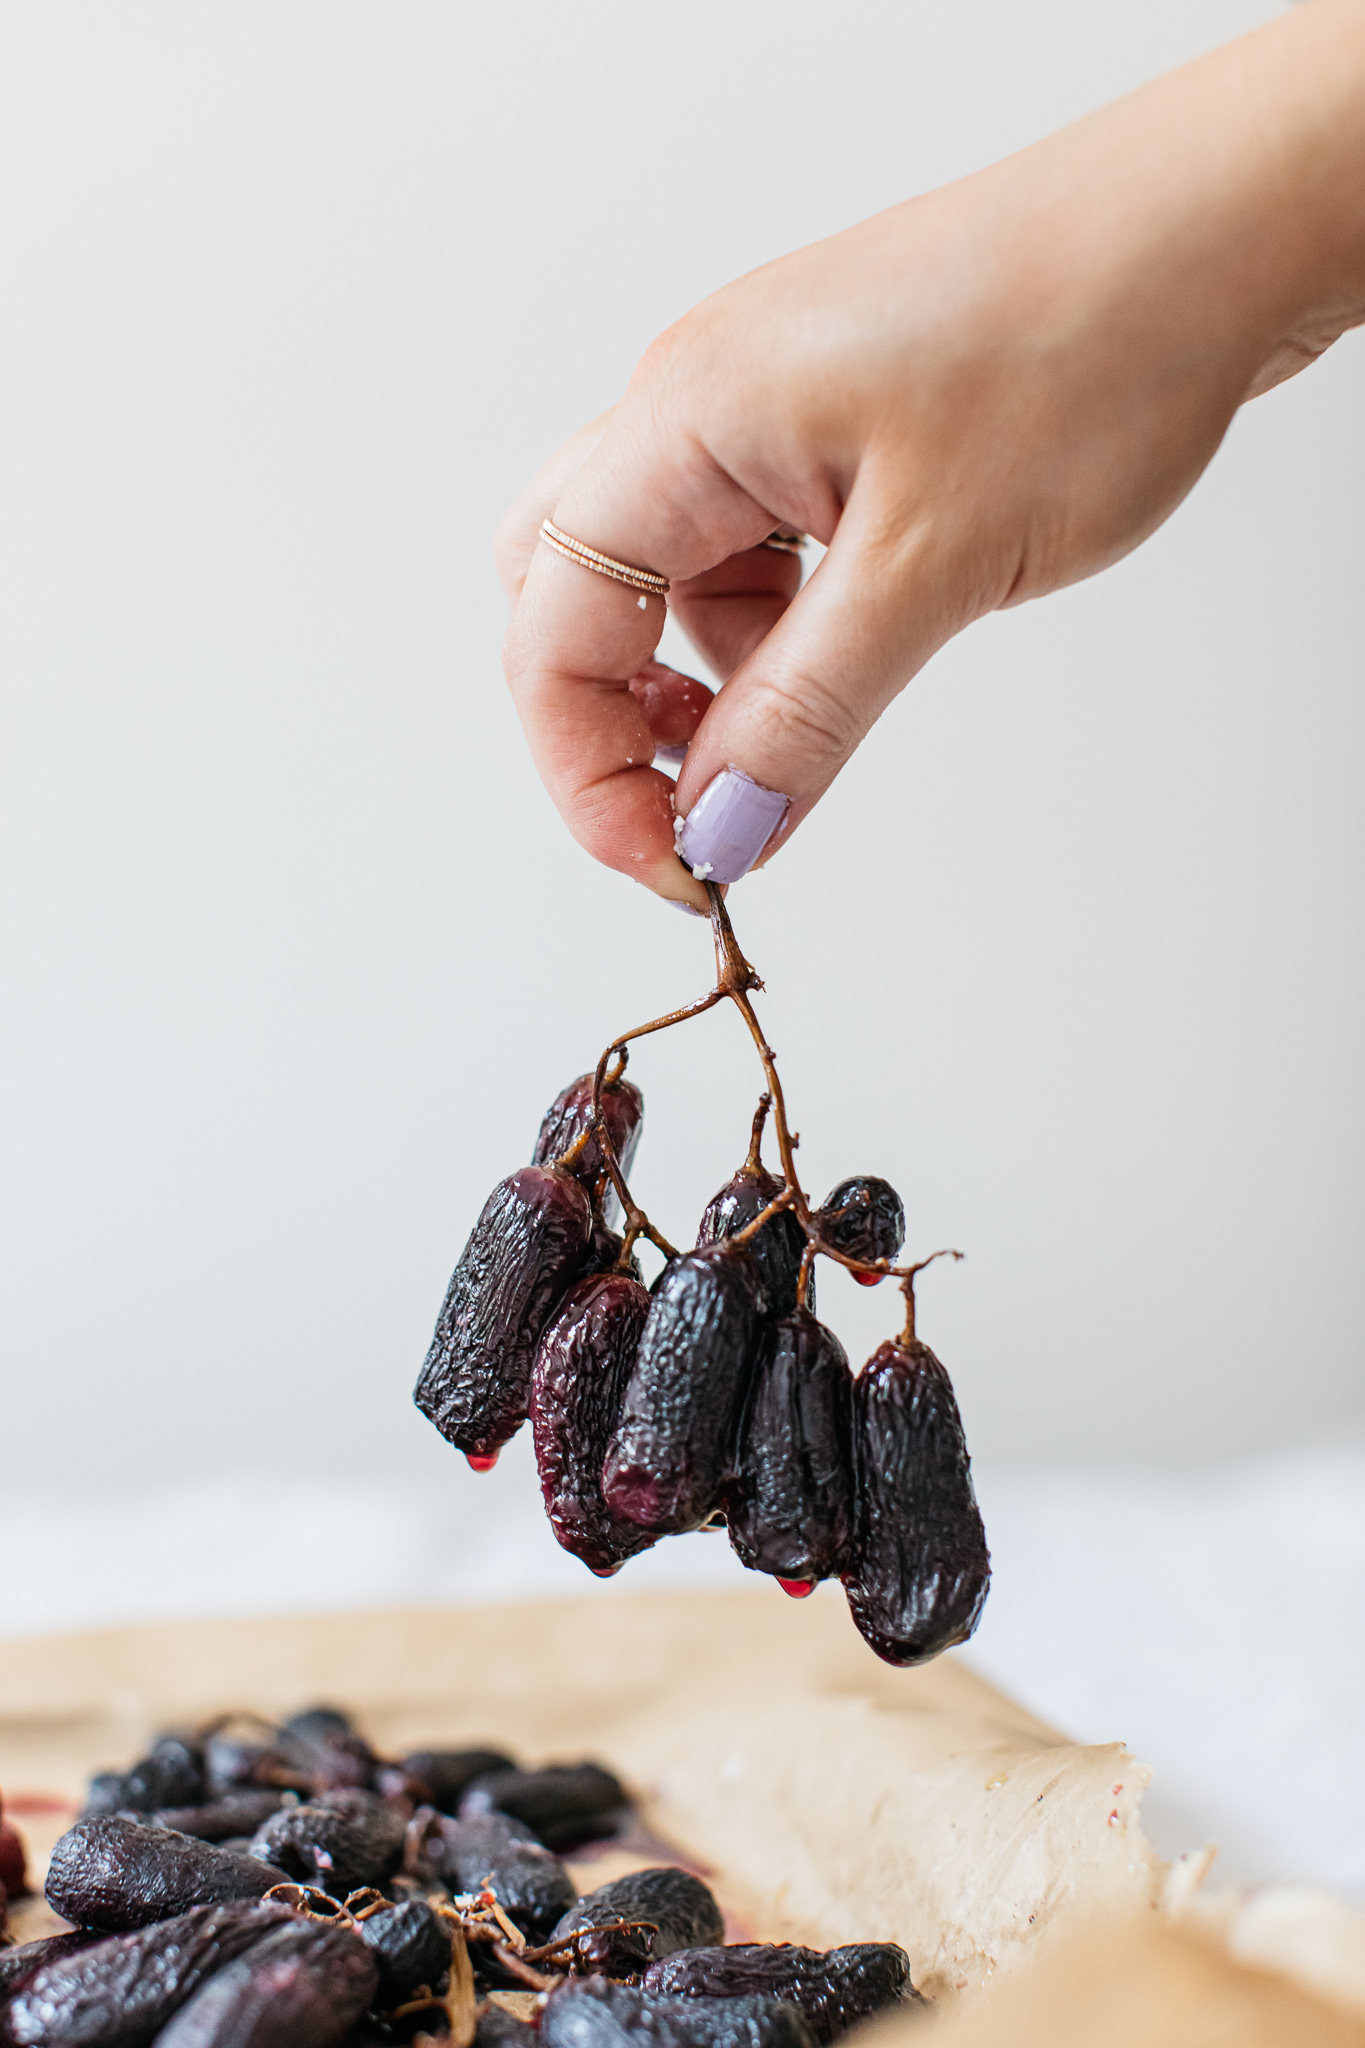 Hand holding roasted grapes